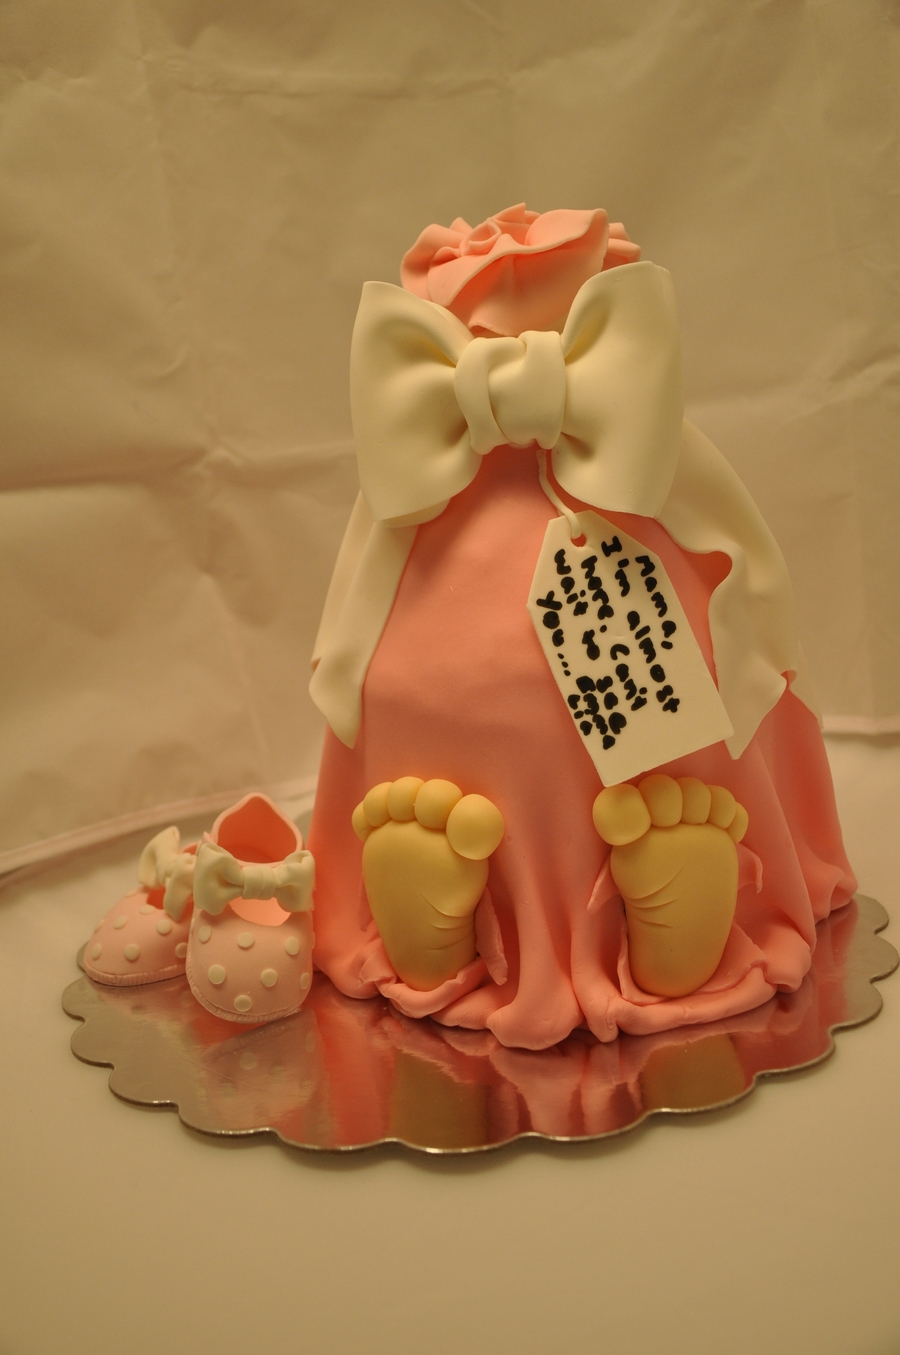 Bundle Of Joy  on Cake Central